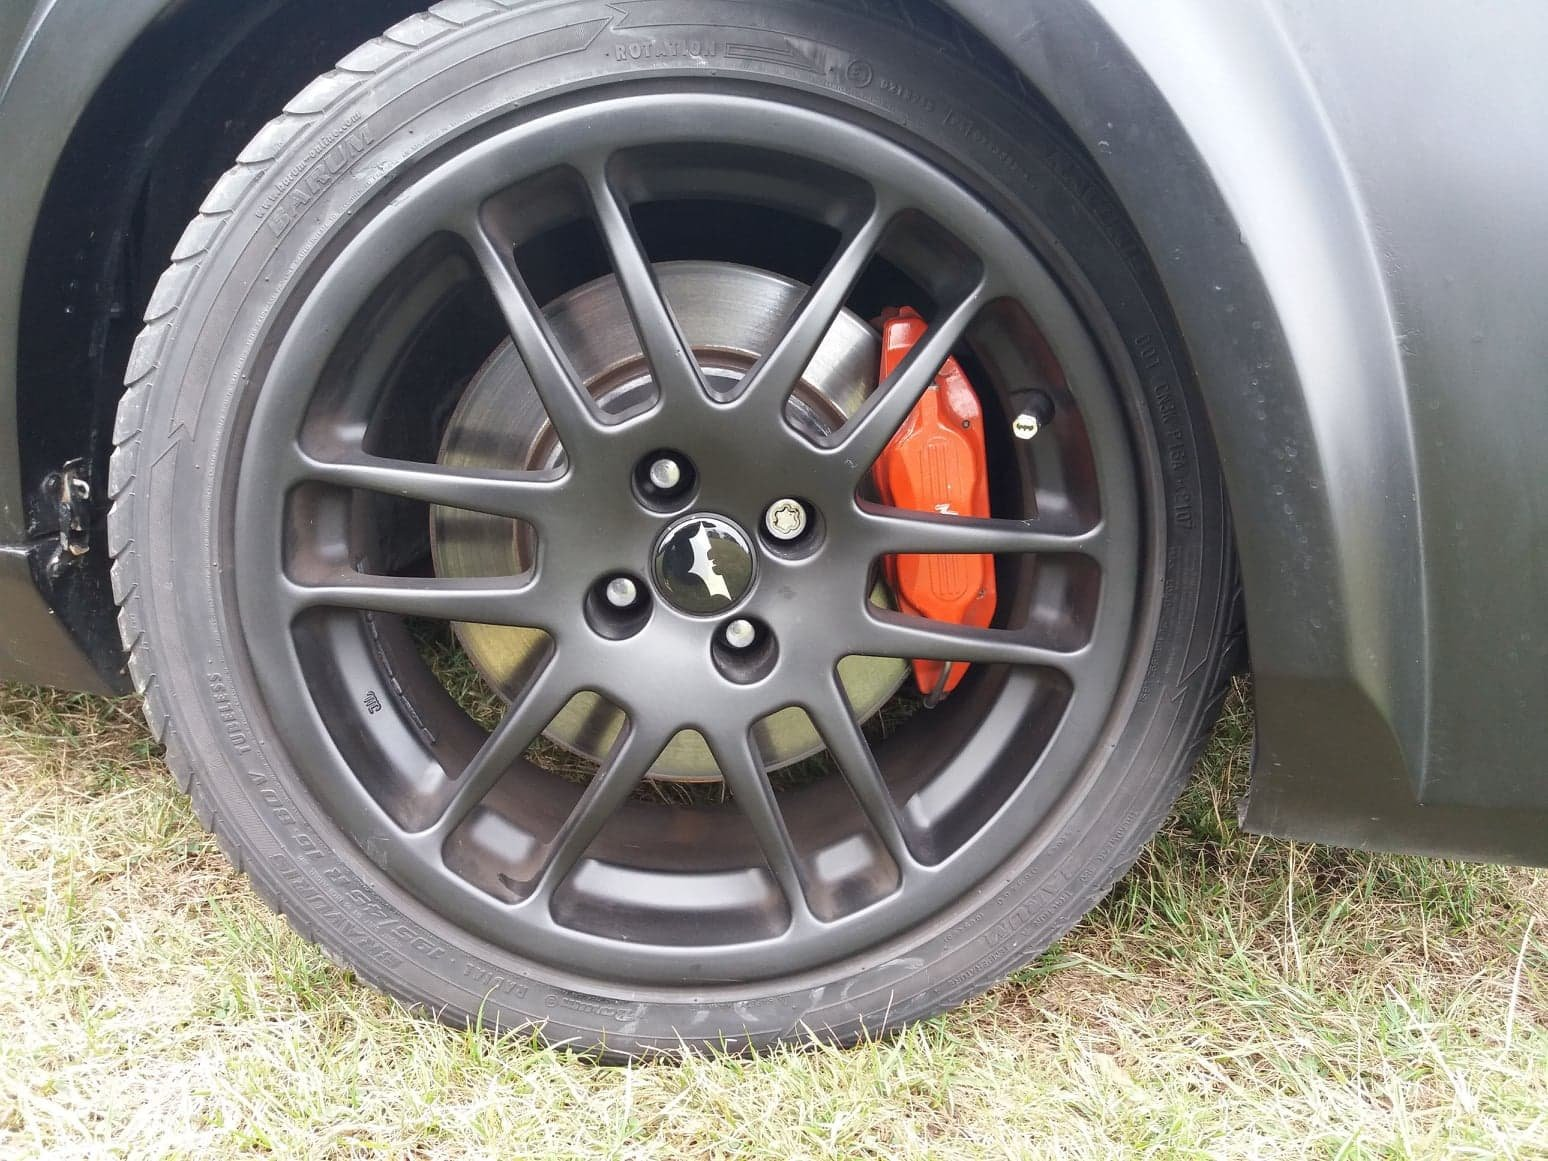 1991 Batmobile inspired mgf 1.8 cc For Sale (picture 6 of 6)